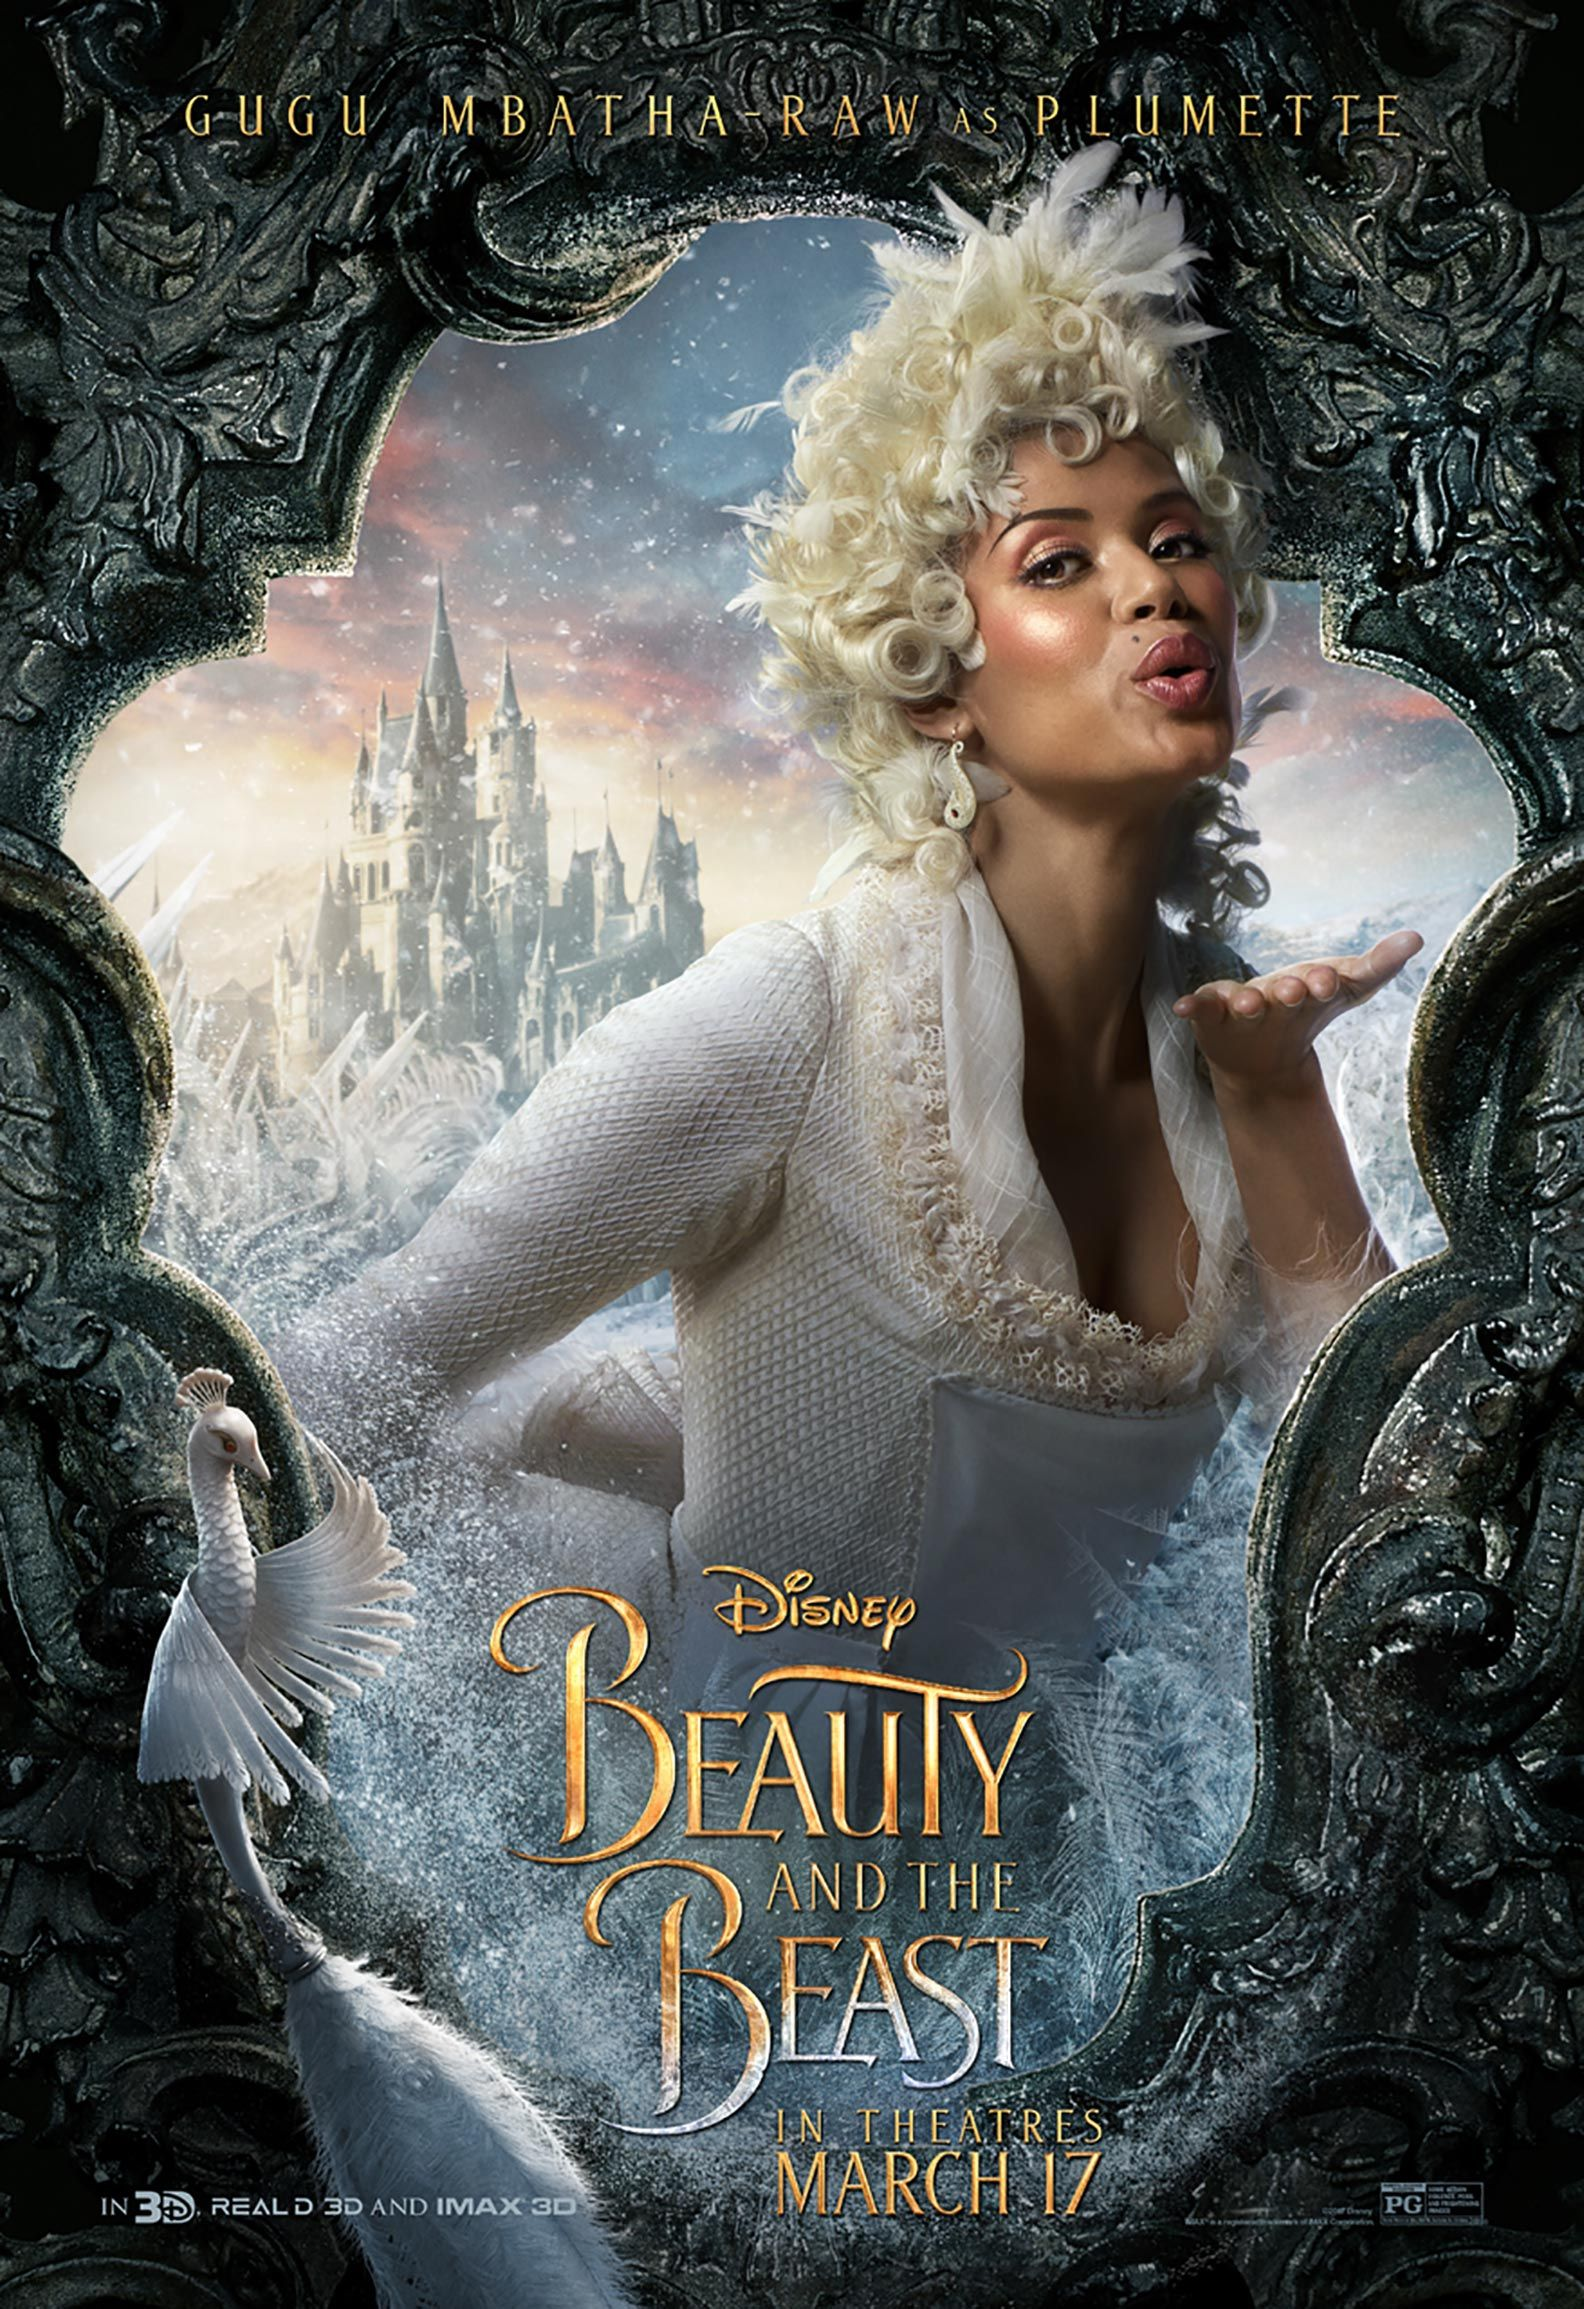 watch beauty and the beast movie 2017 full hd online - family search